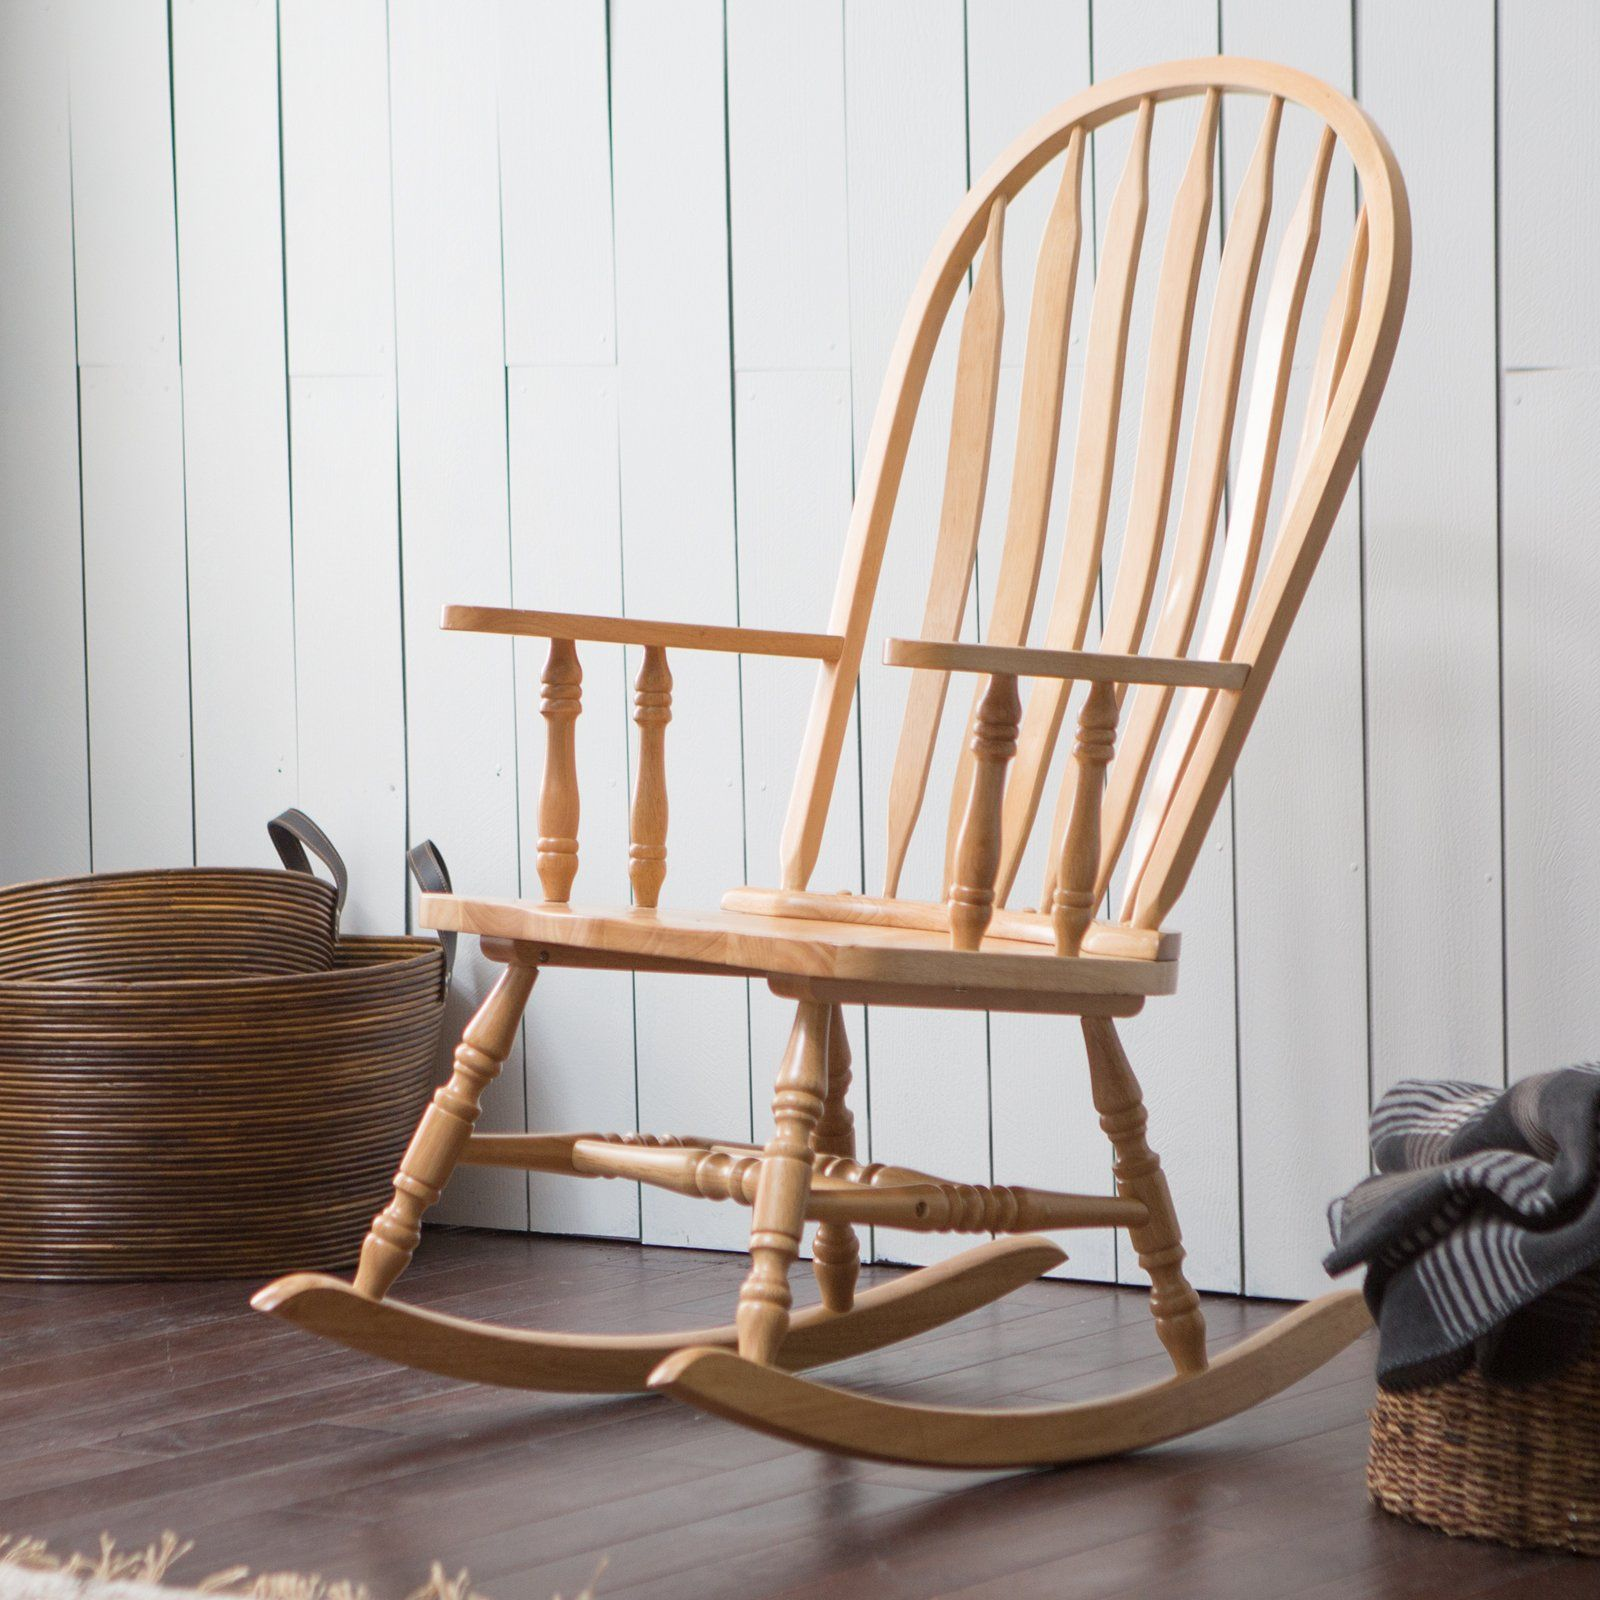 Have To Have It Windsor Rocking Chair Natural 119 99 Rocking Chair Windsor Rocking Chair Wood Rocking Chair